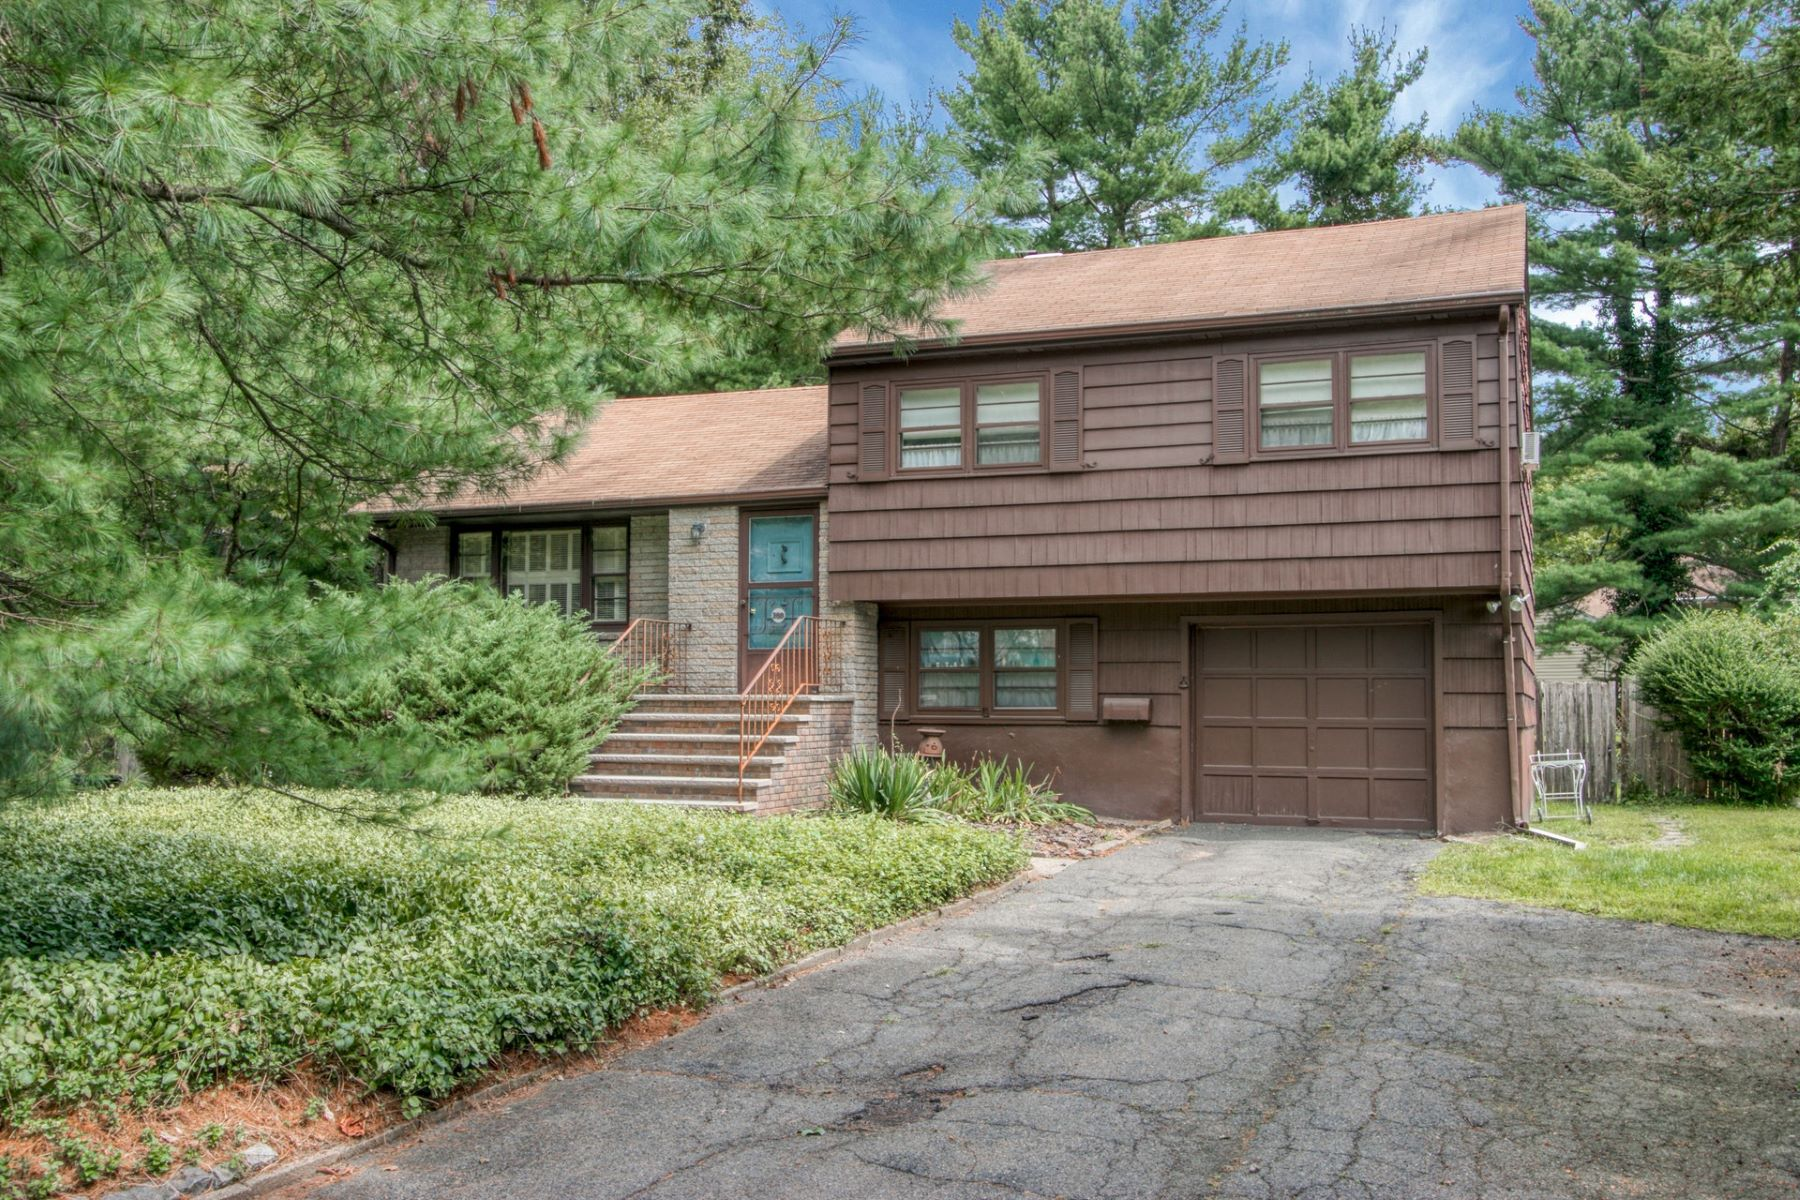 Single Family Homes for Active at 388 Piermont Rd Demarest, New Jersey 07627 United States